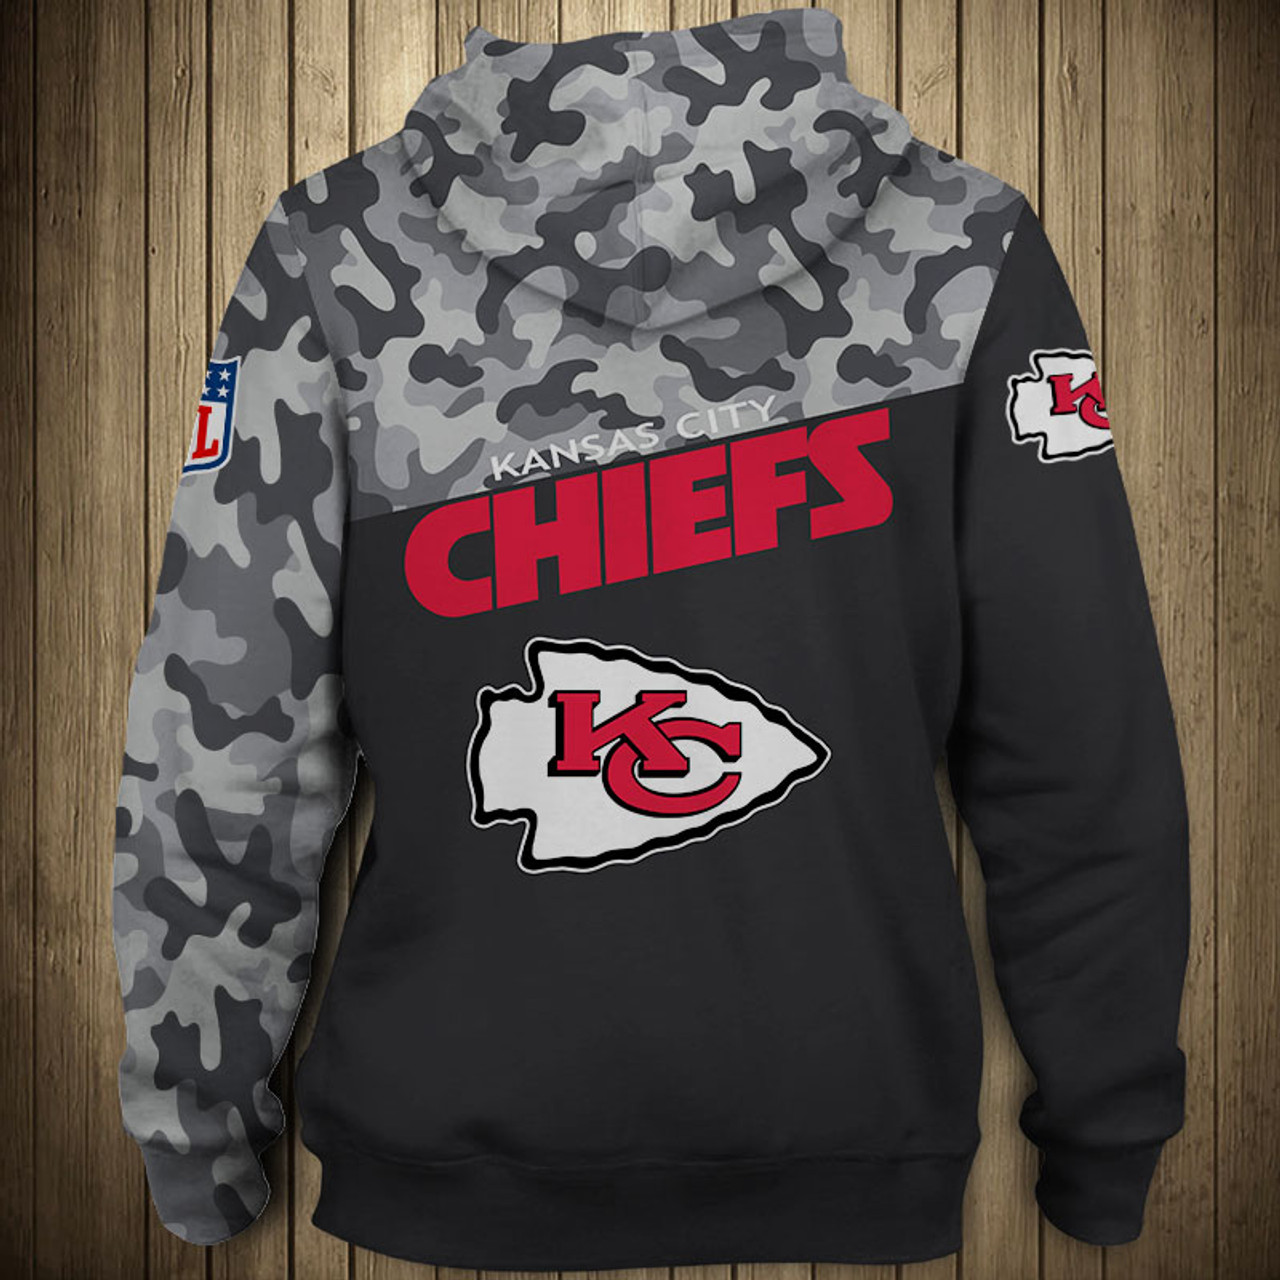 hot sale online 70ffe a2878 *(OFFICIAL-N.F.L.KANSAS-CITY-CHIEFS-CAMO.DESIGN-PULLOVER-HOODIES/3D-CUSTOM-CHIEFS-LOGOS  & OFFICIAL-CHIEFS-TEAM-COLORS/NICE-3D-DETAILED-GRAPHIC-PRINTED...